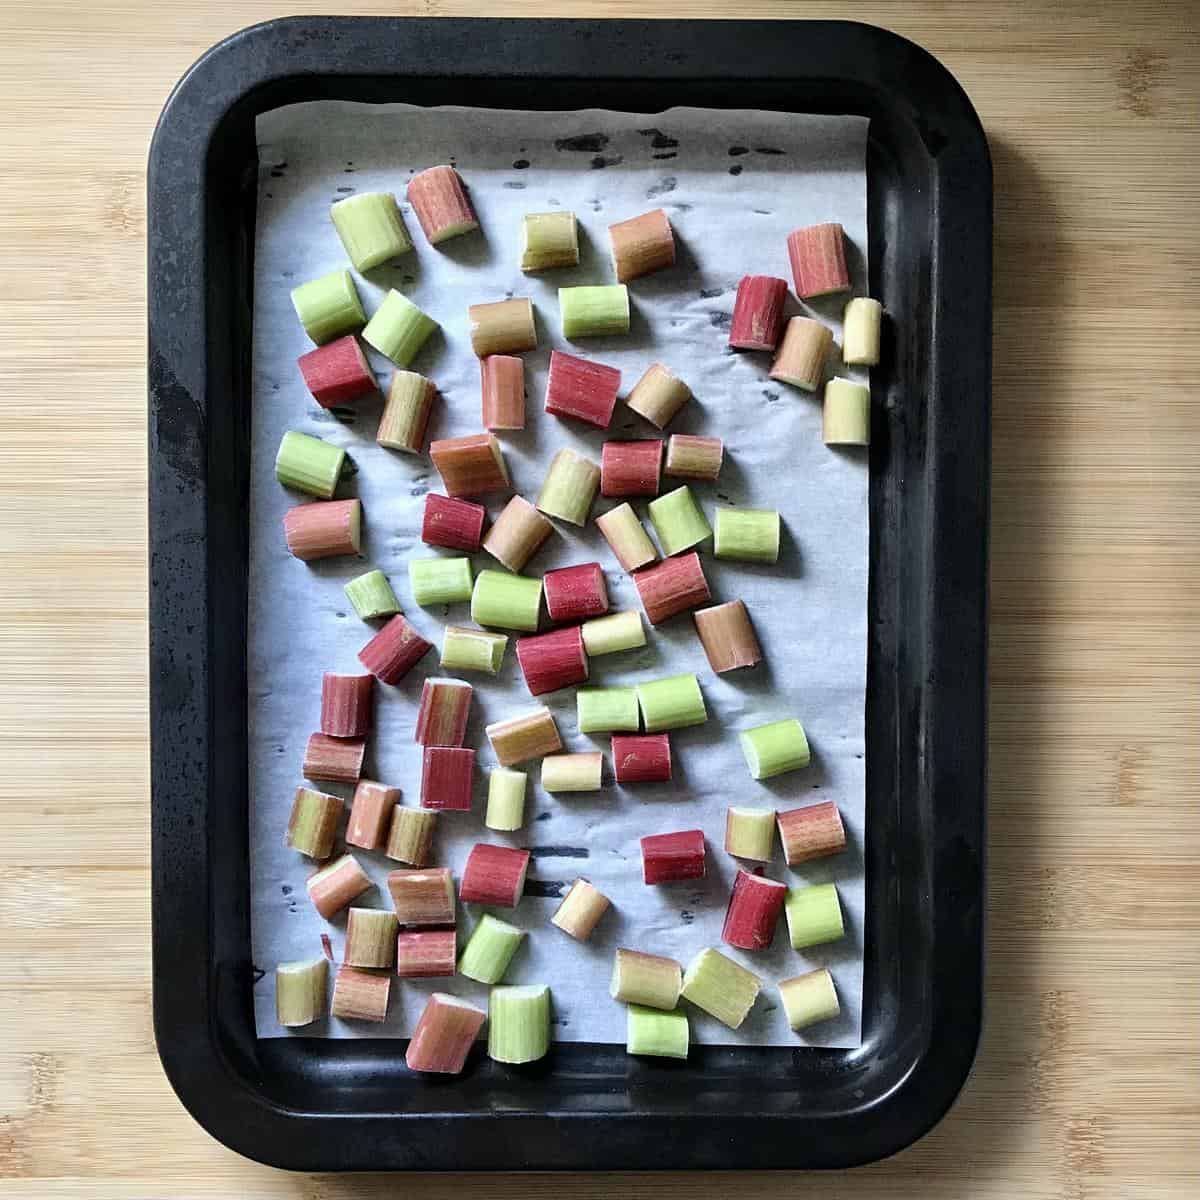 Diced rhubarb on parchment paper on a rimmed pan.